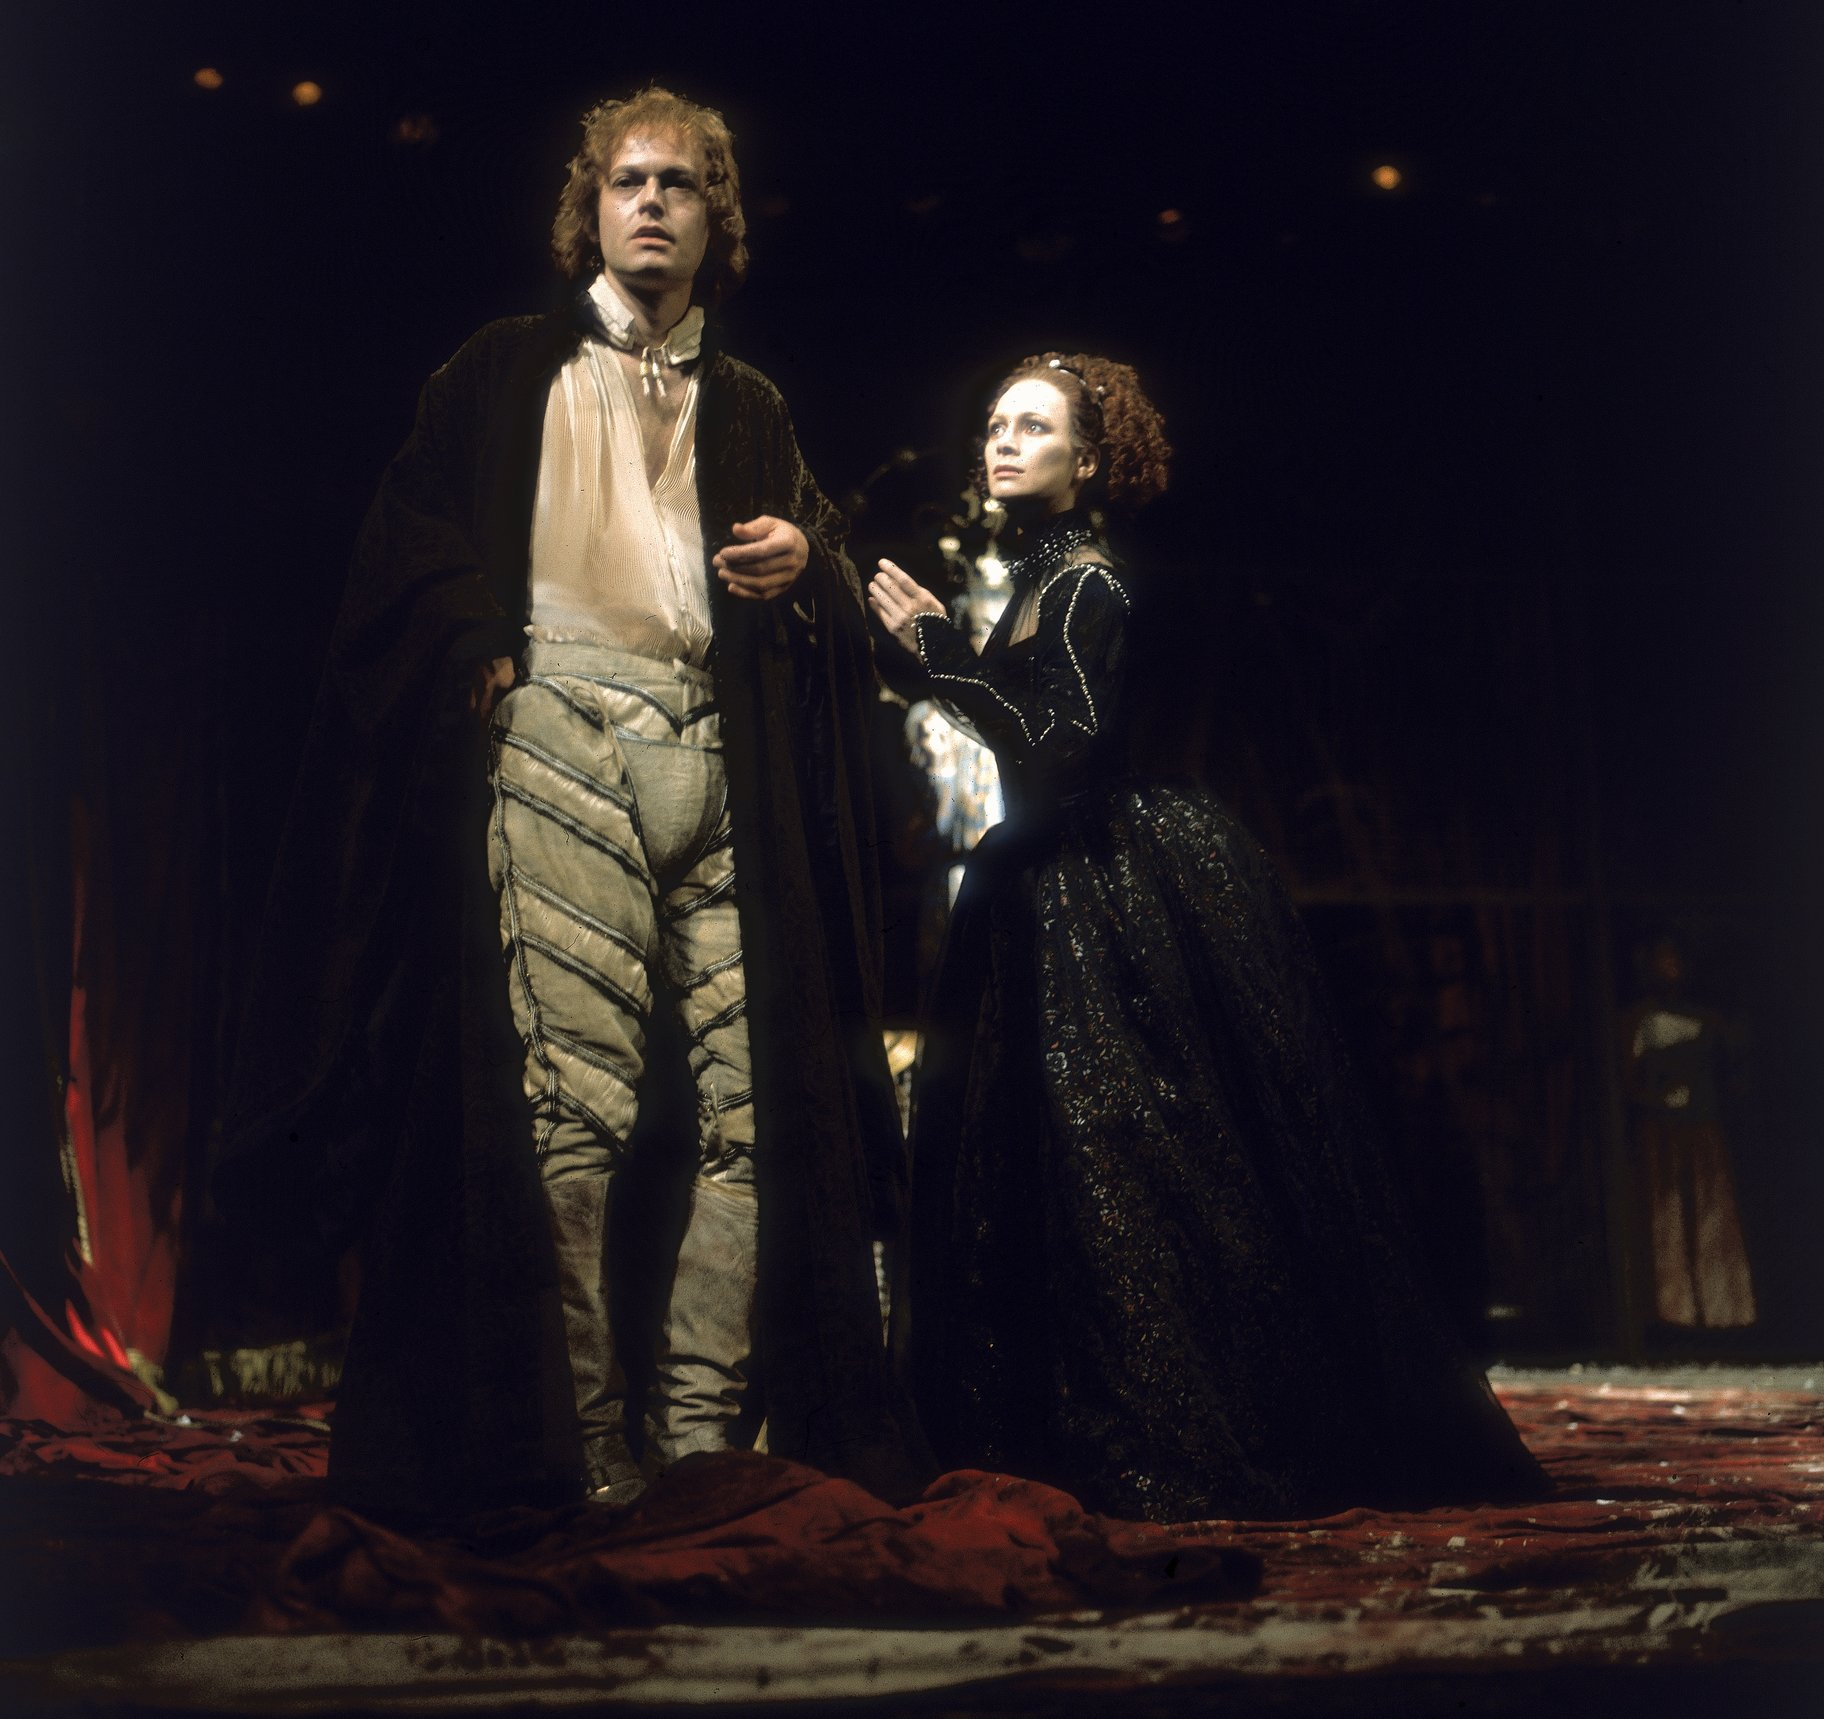 A man standing next to a woman in an elaborate gown.